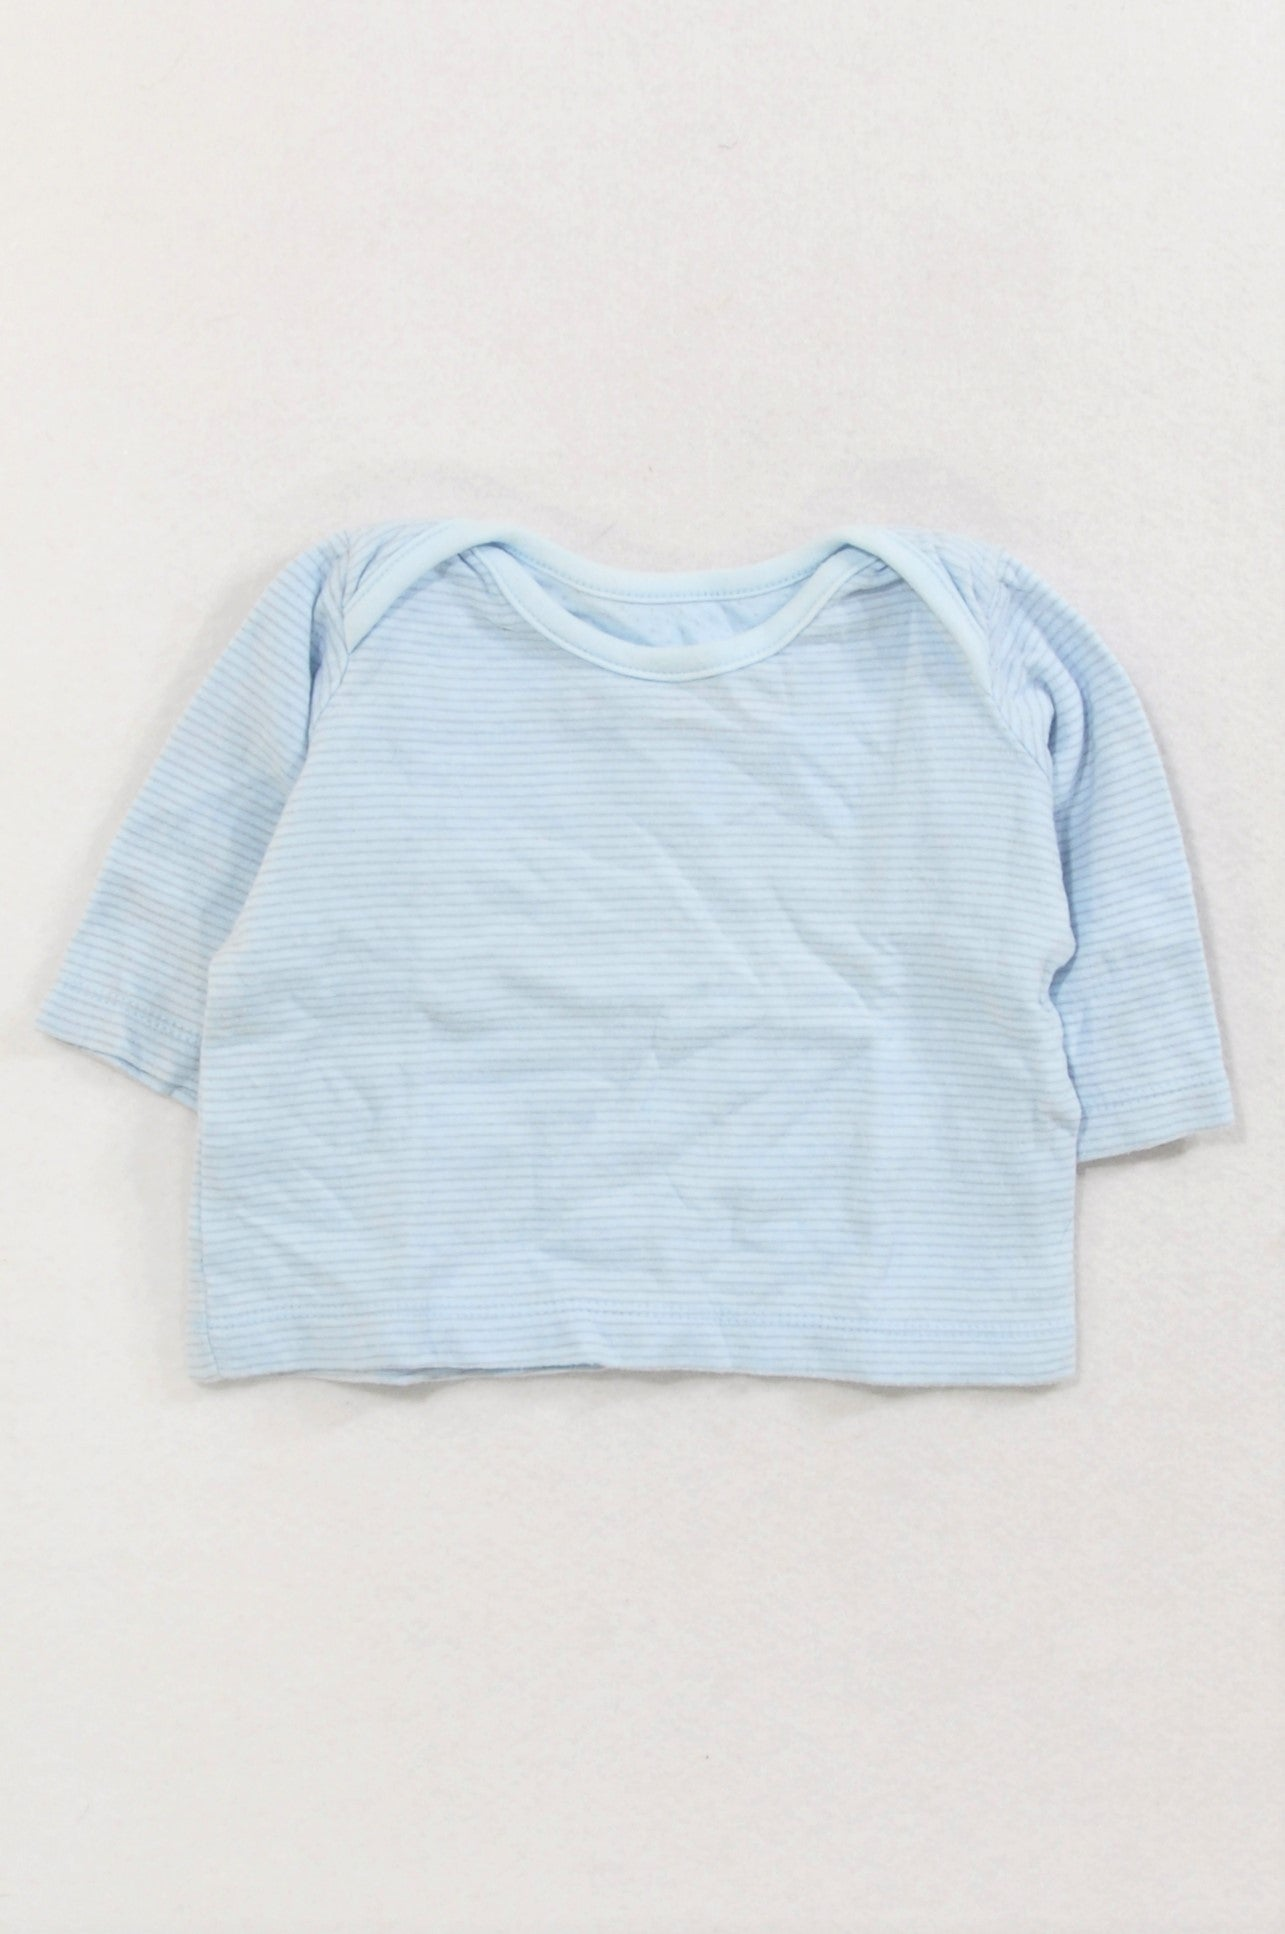 Woolworths Soft Blue Thin Grey Striped T-shirt Boys 3-6 months